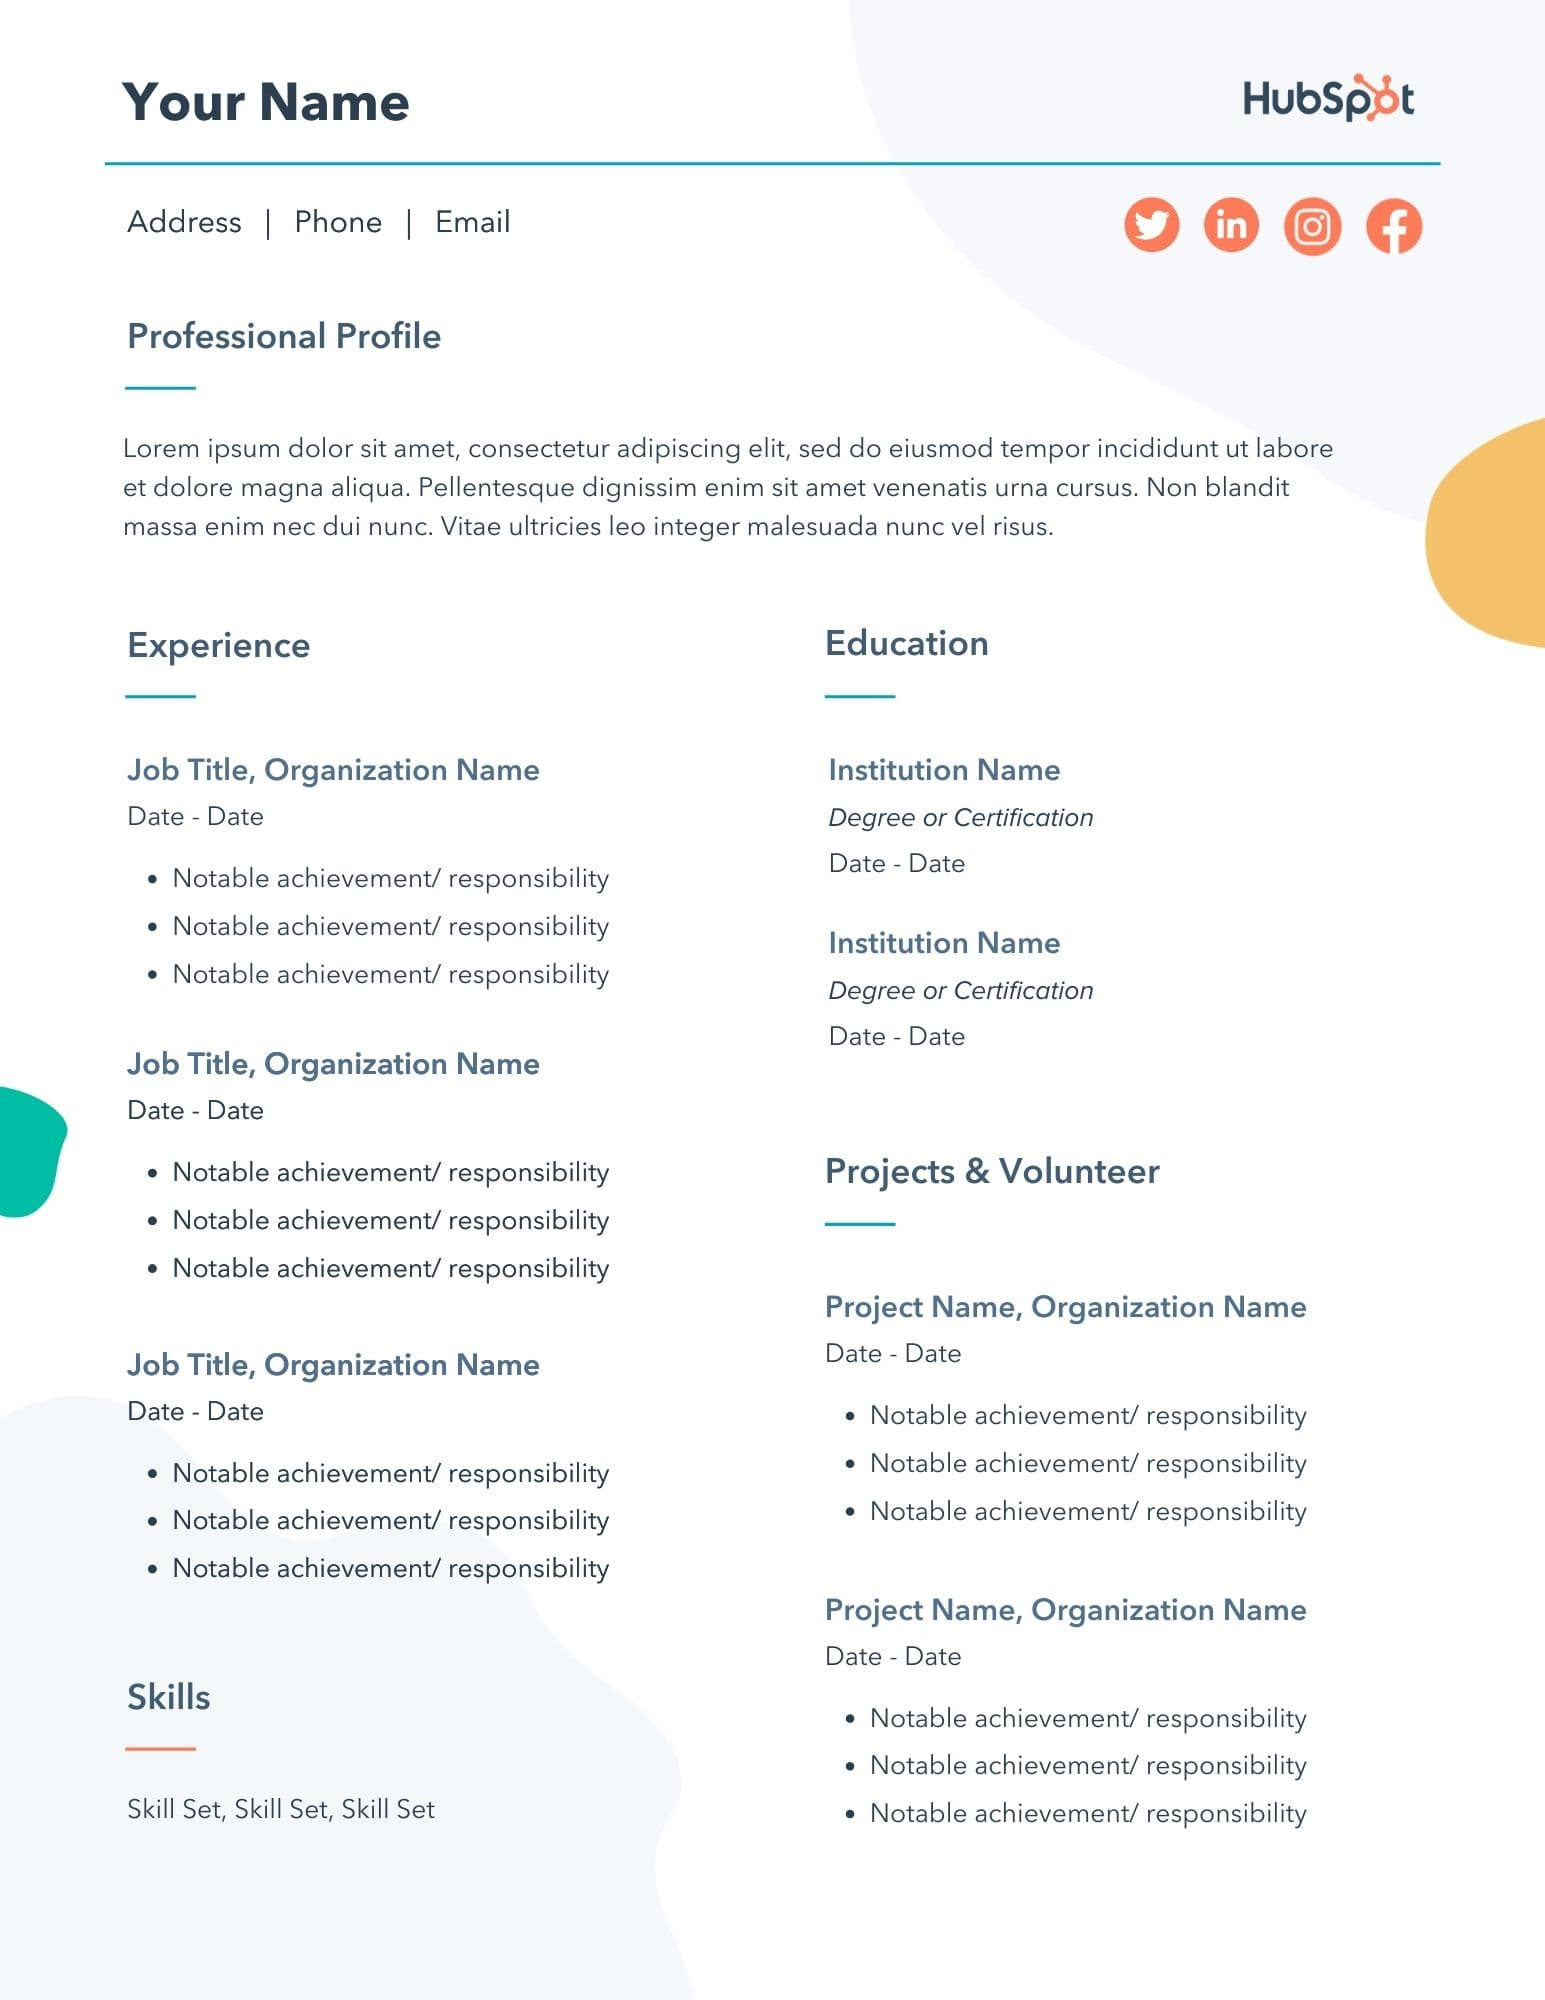 free resume templates for microsoft word to make your own professional template system Resume Professional Resume Templates 2018 Free Download